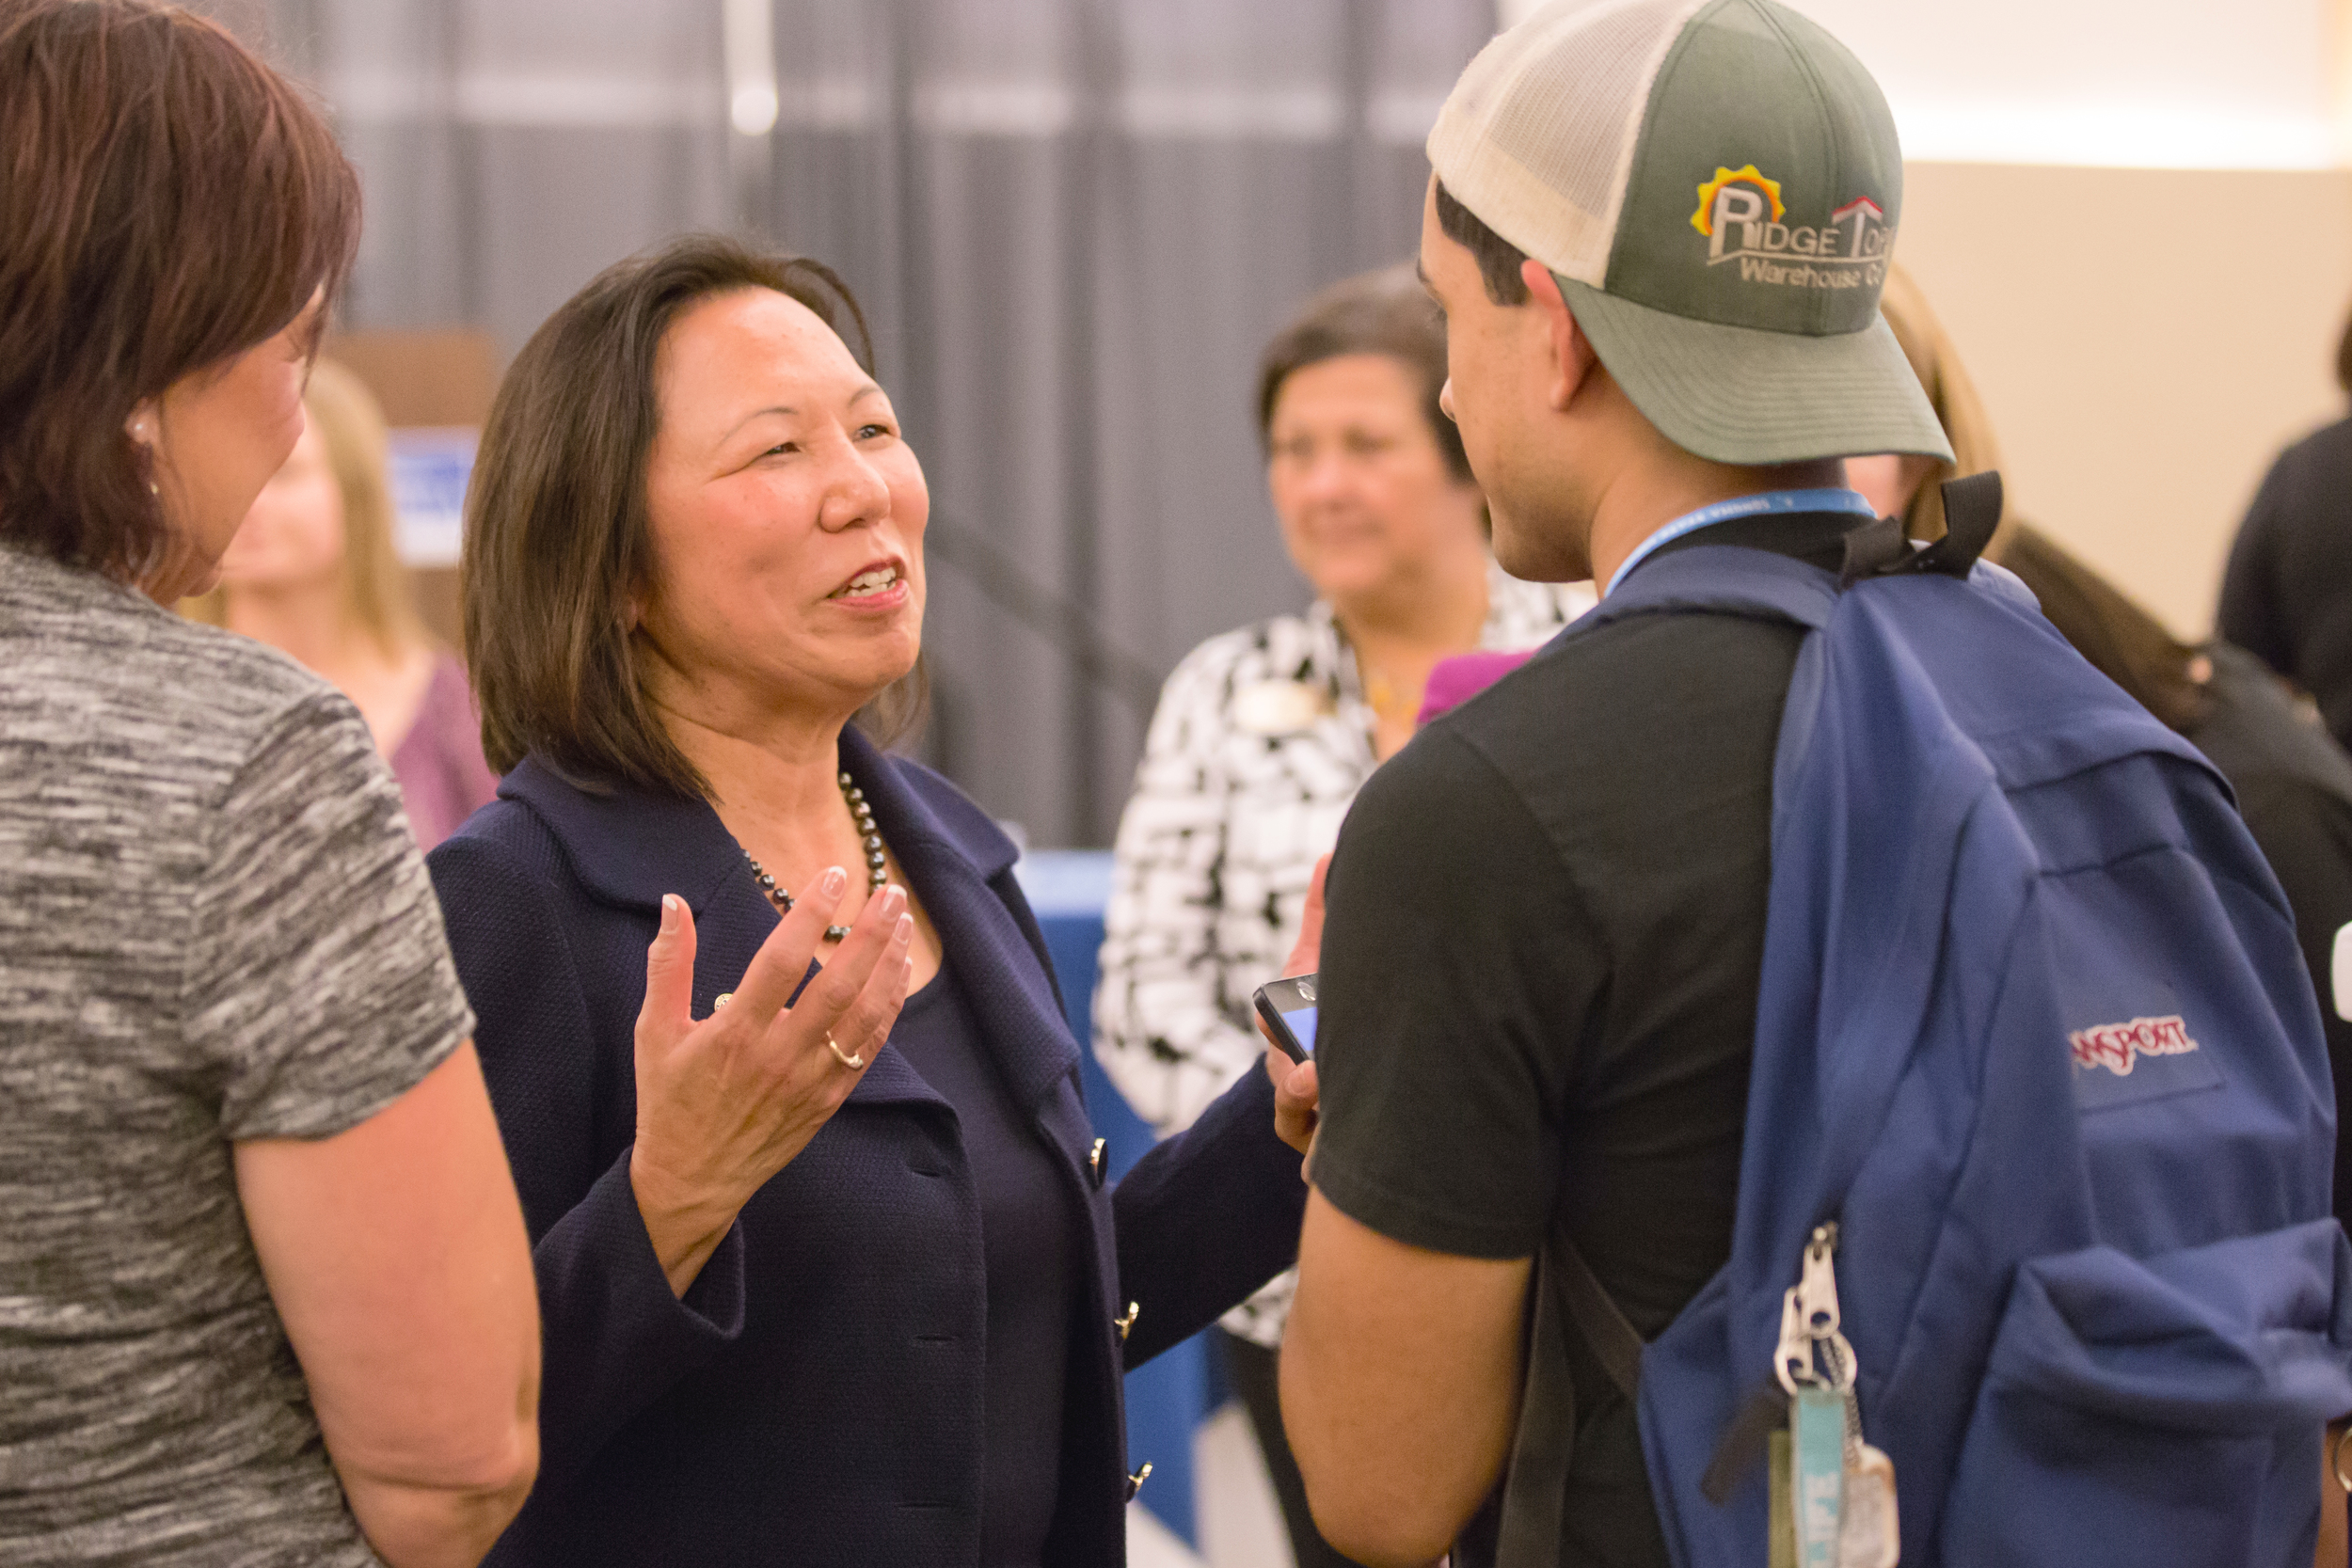 Sonoma State University's President - Elect Judy K. Sakaki met with students and faculty during Friday's presidential reception in the Student Center Ballroom.